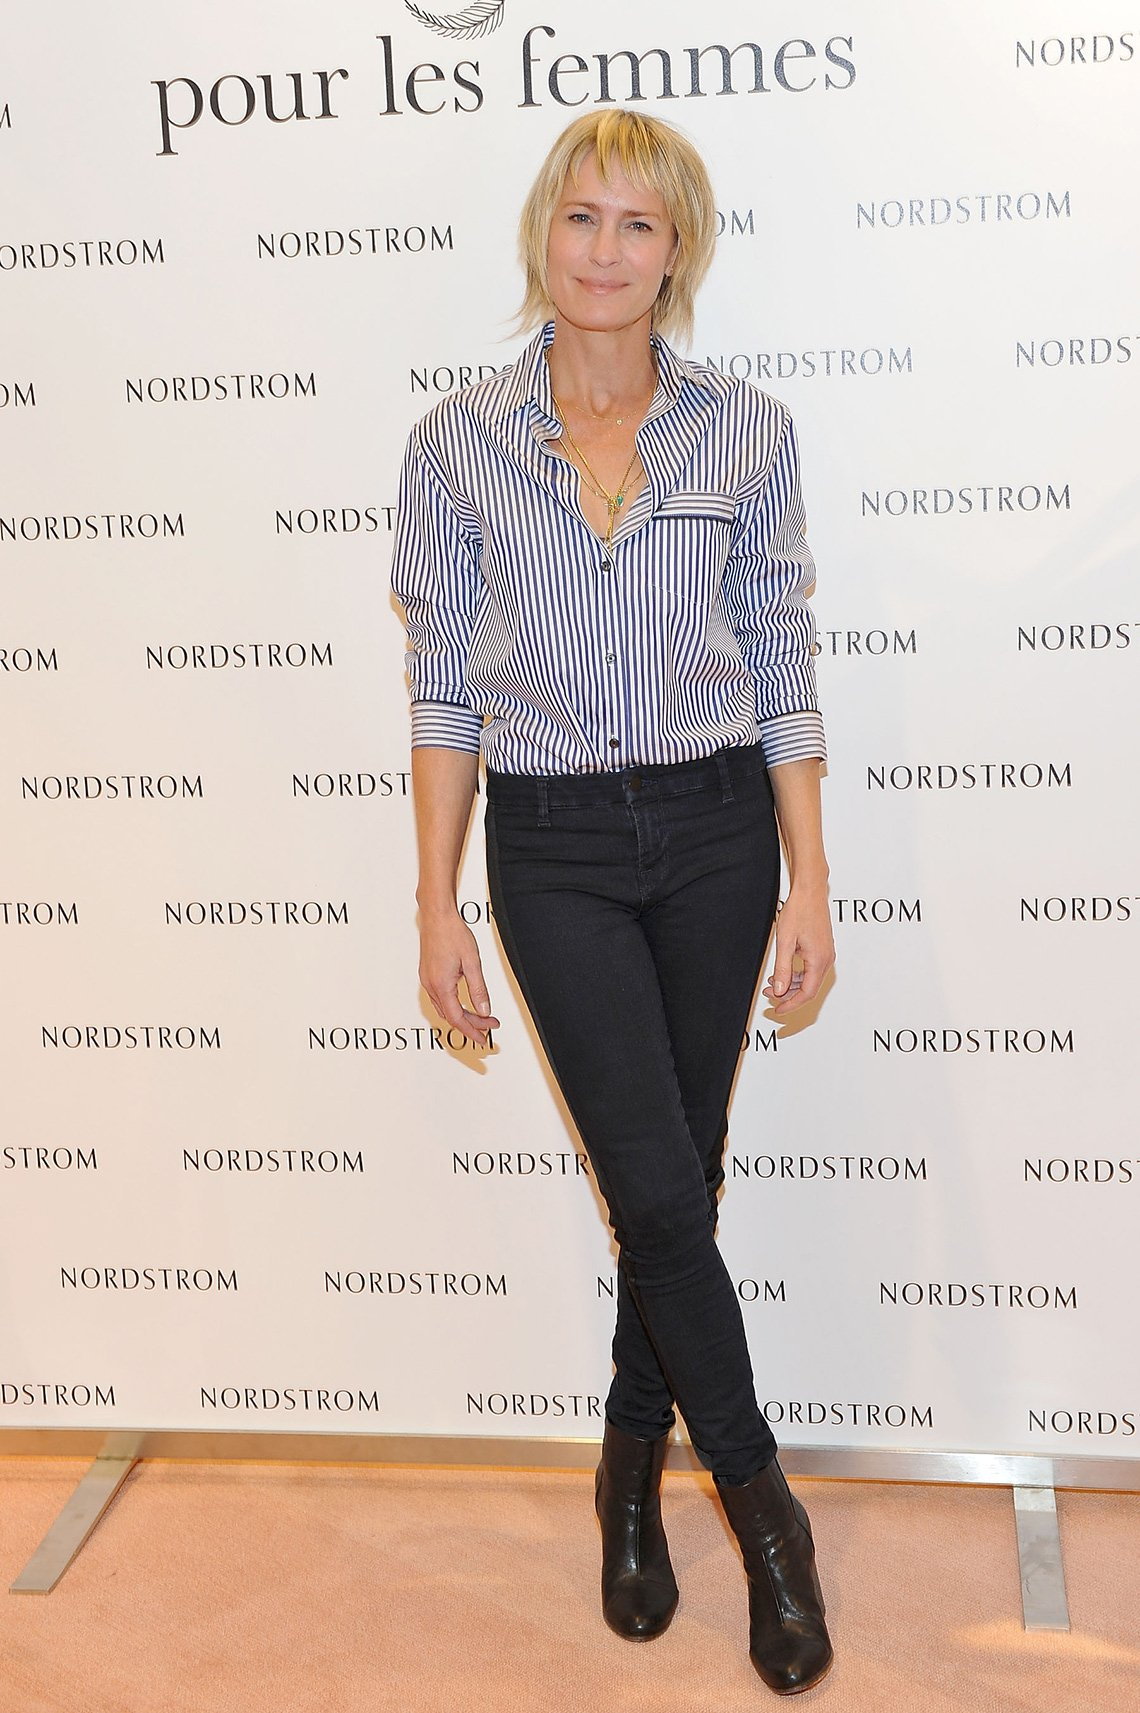 item 4, Gallery image. Robin Wright usando jeans.